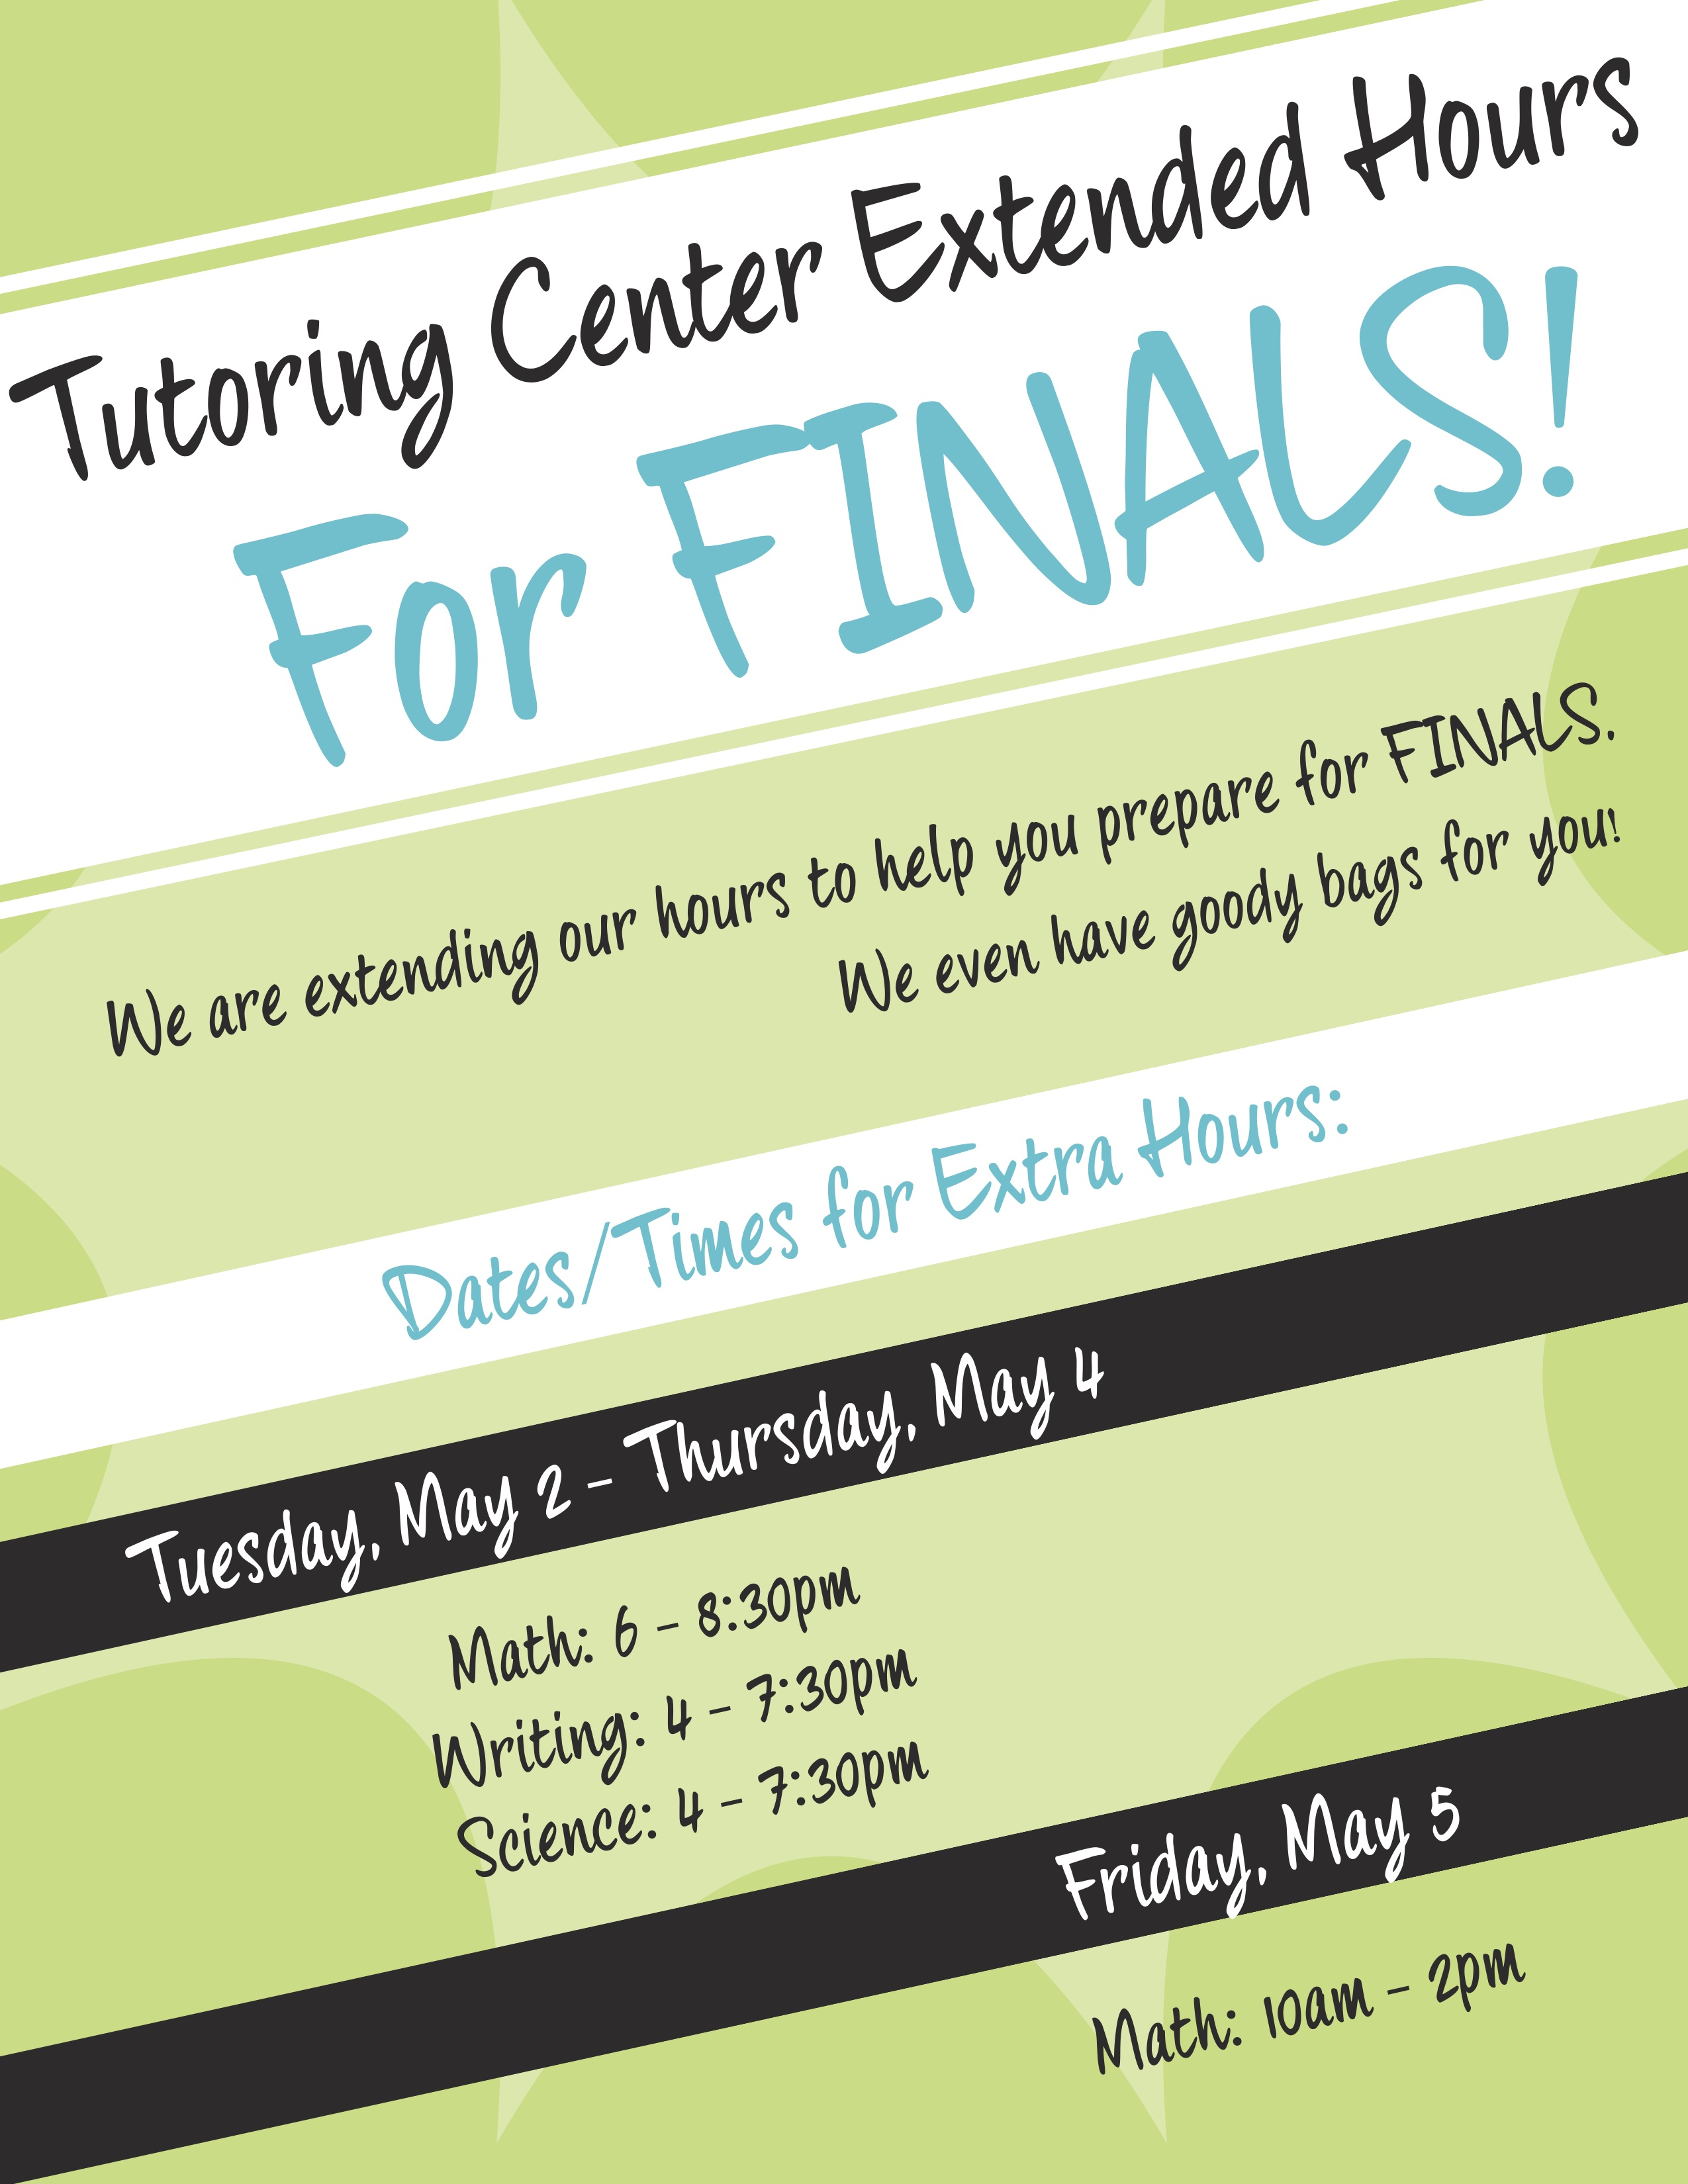 Tutoring Center Extended Hours for Finals!